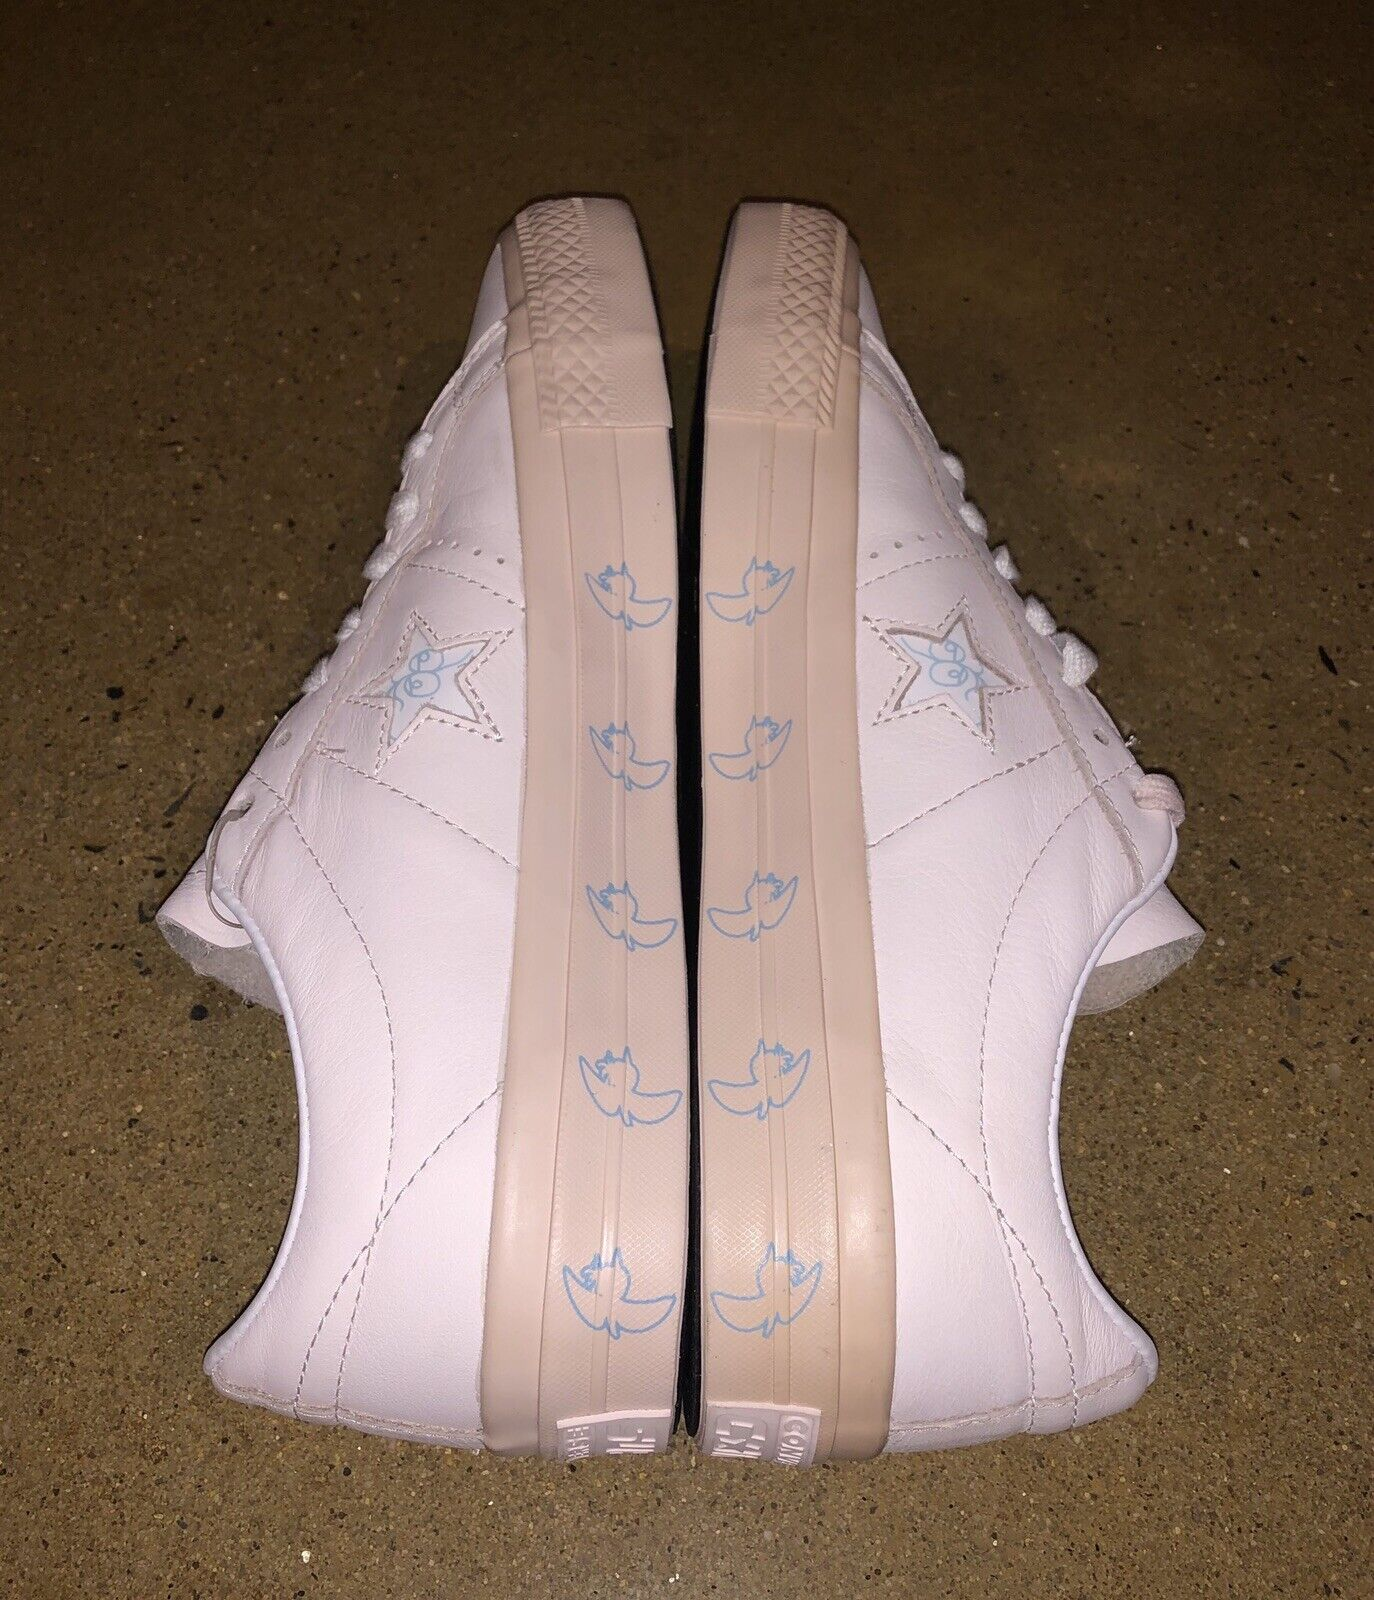 Converse Cons One Star Pro Ox Size 9.5 US Women's Pastel Pink Men's 8 US